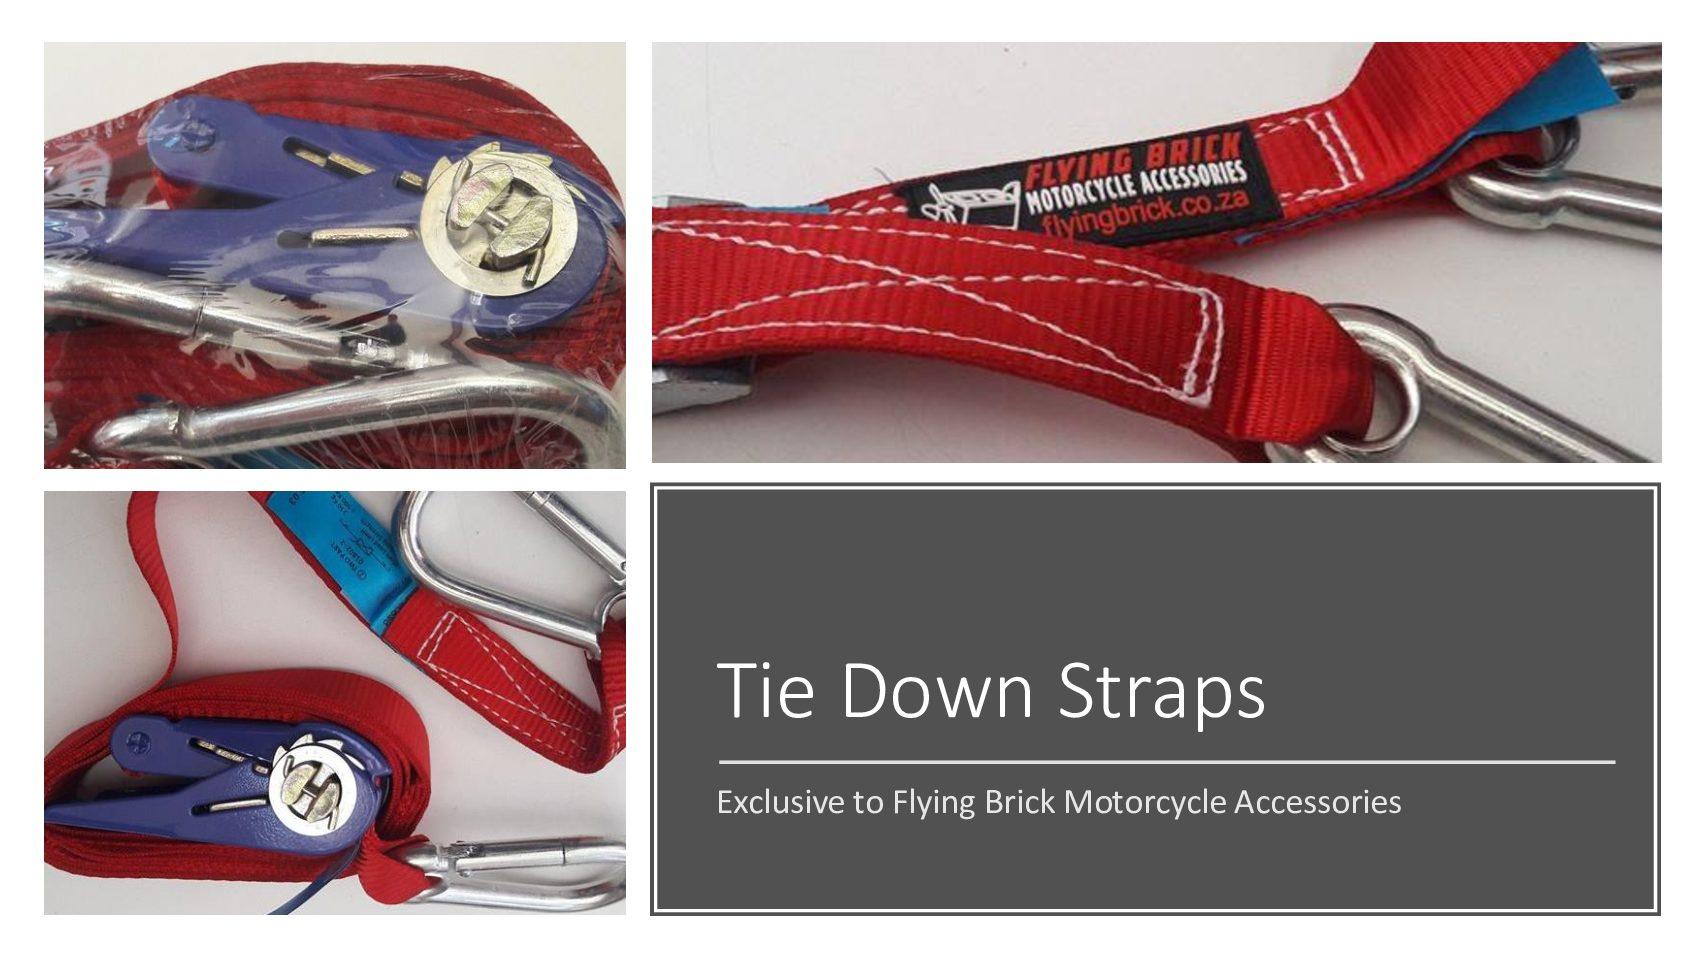 Flying Brick Tie-Down Straps – something NEW!